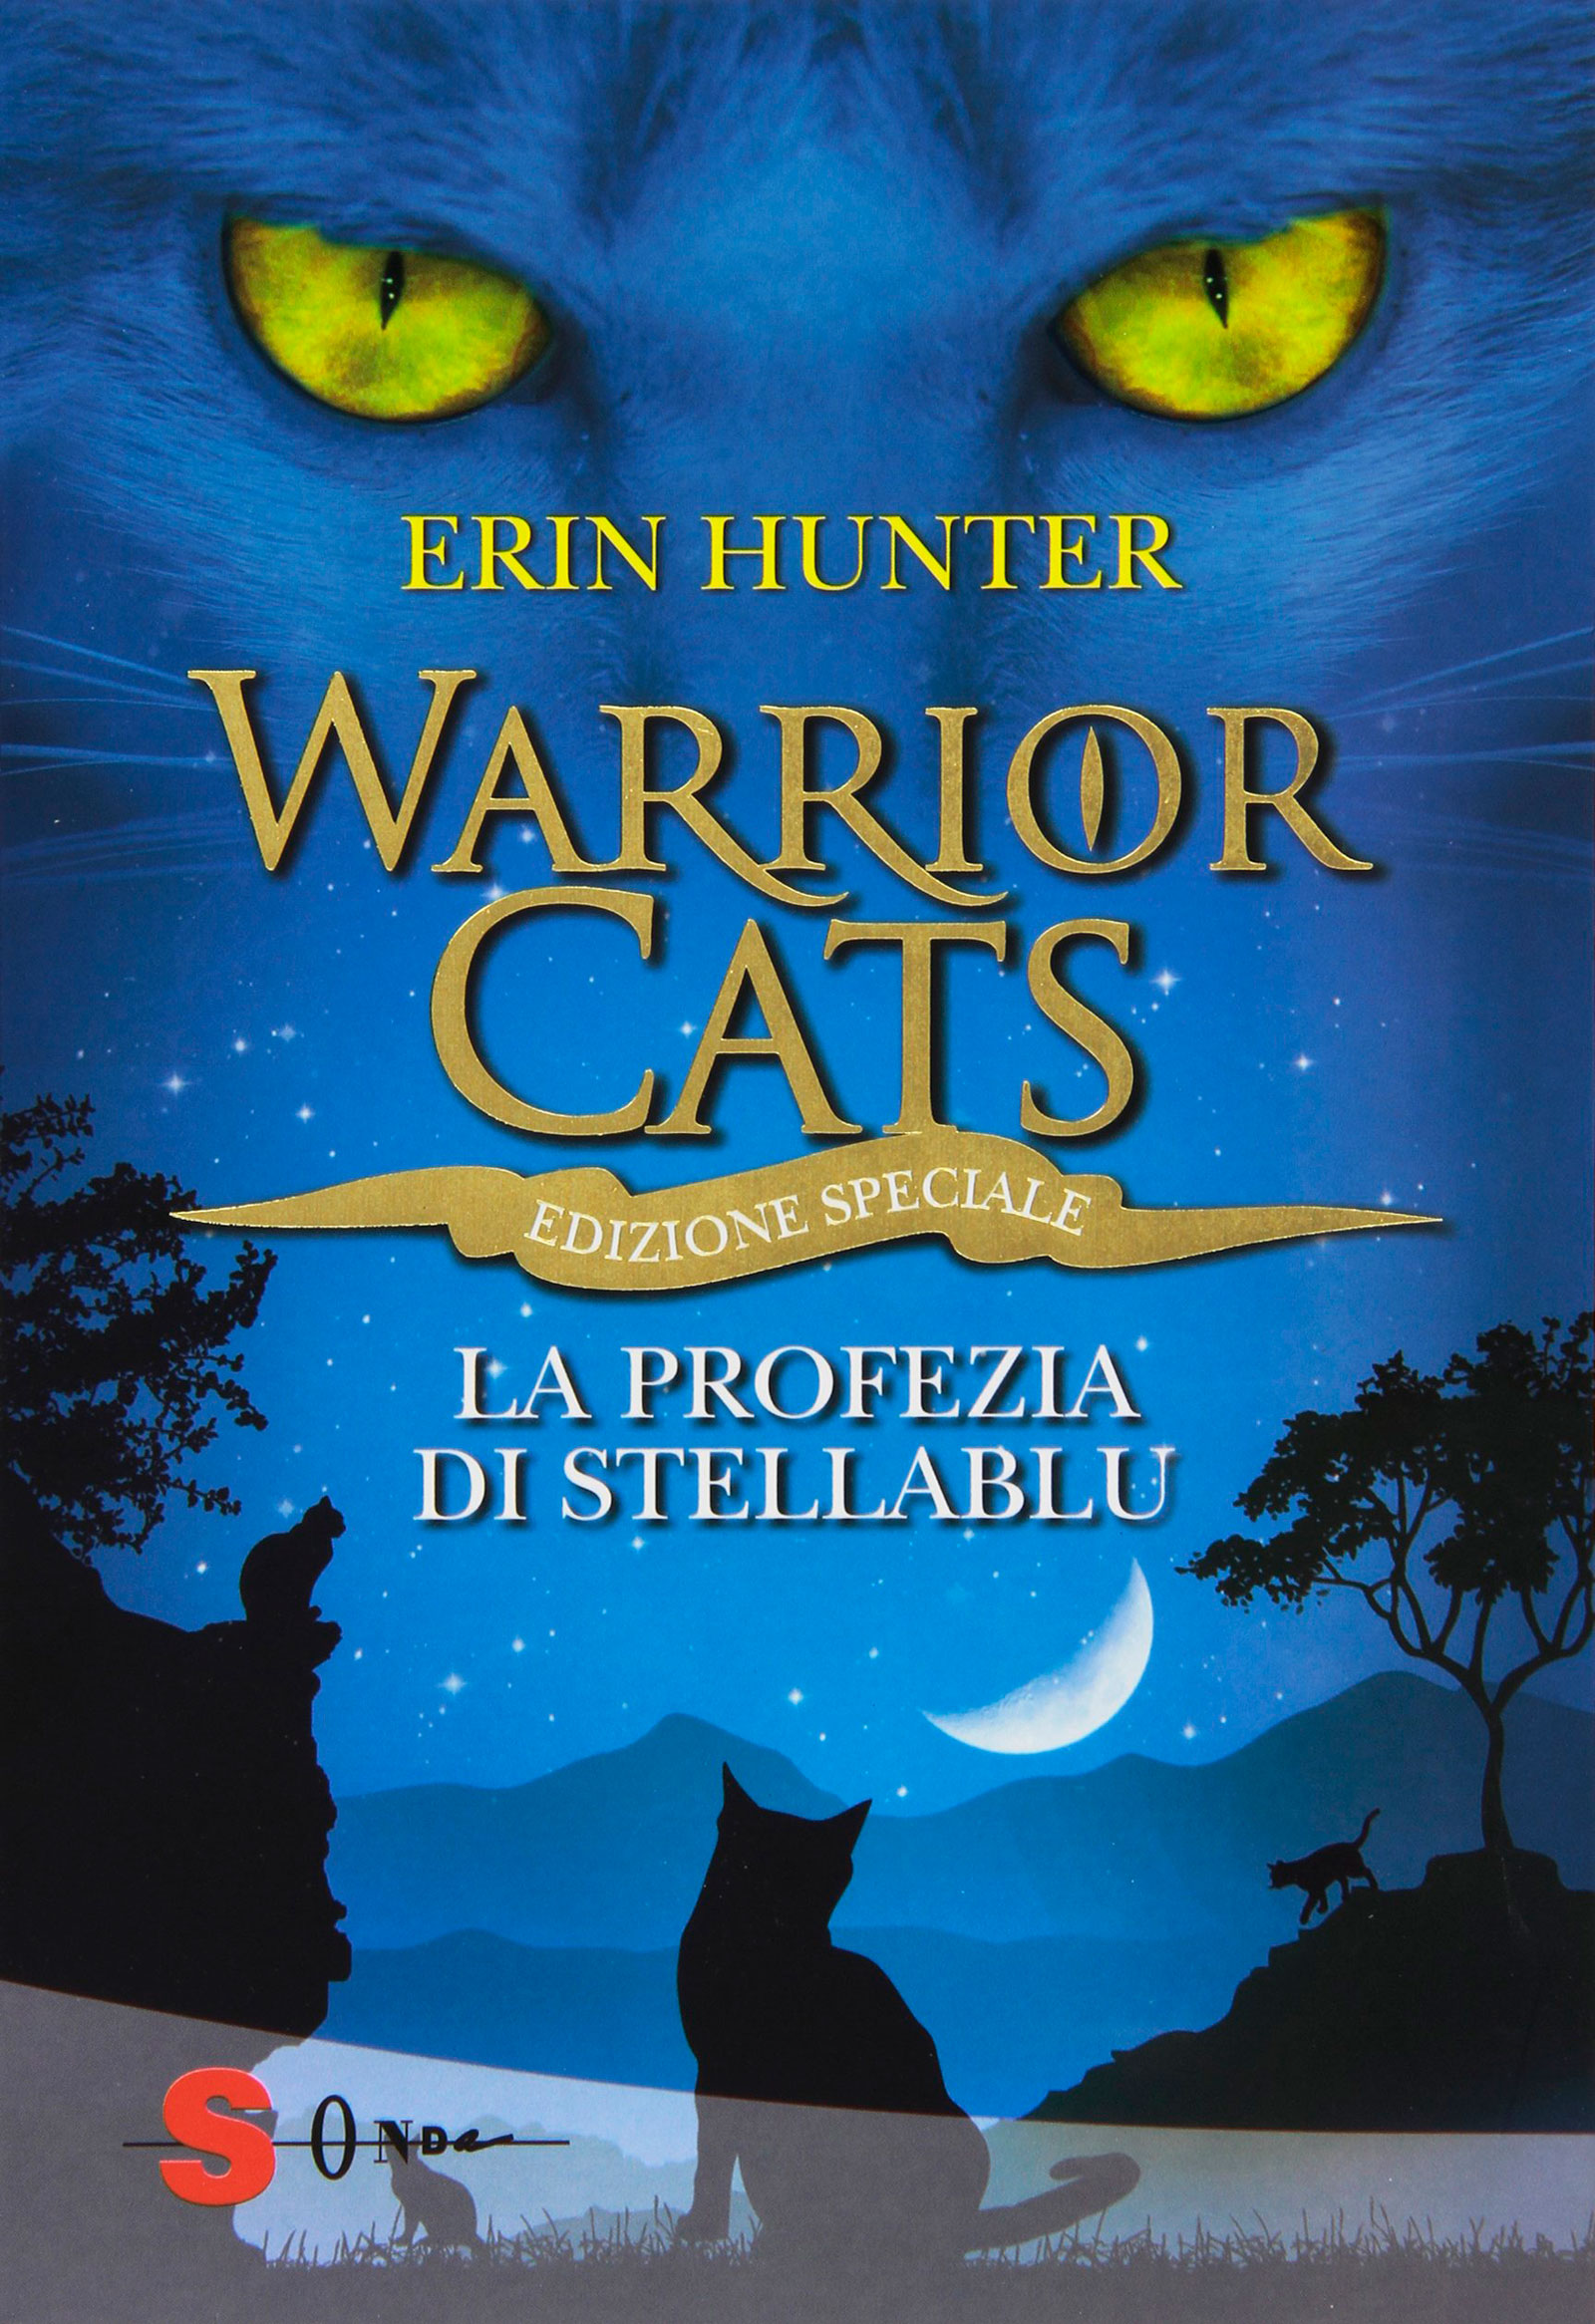 Warrior cats. La profezia di Stella Blu)